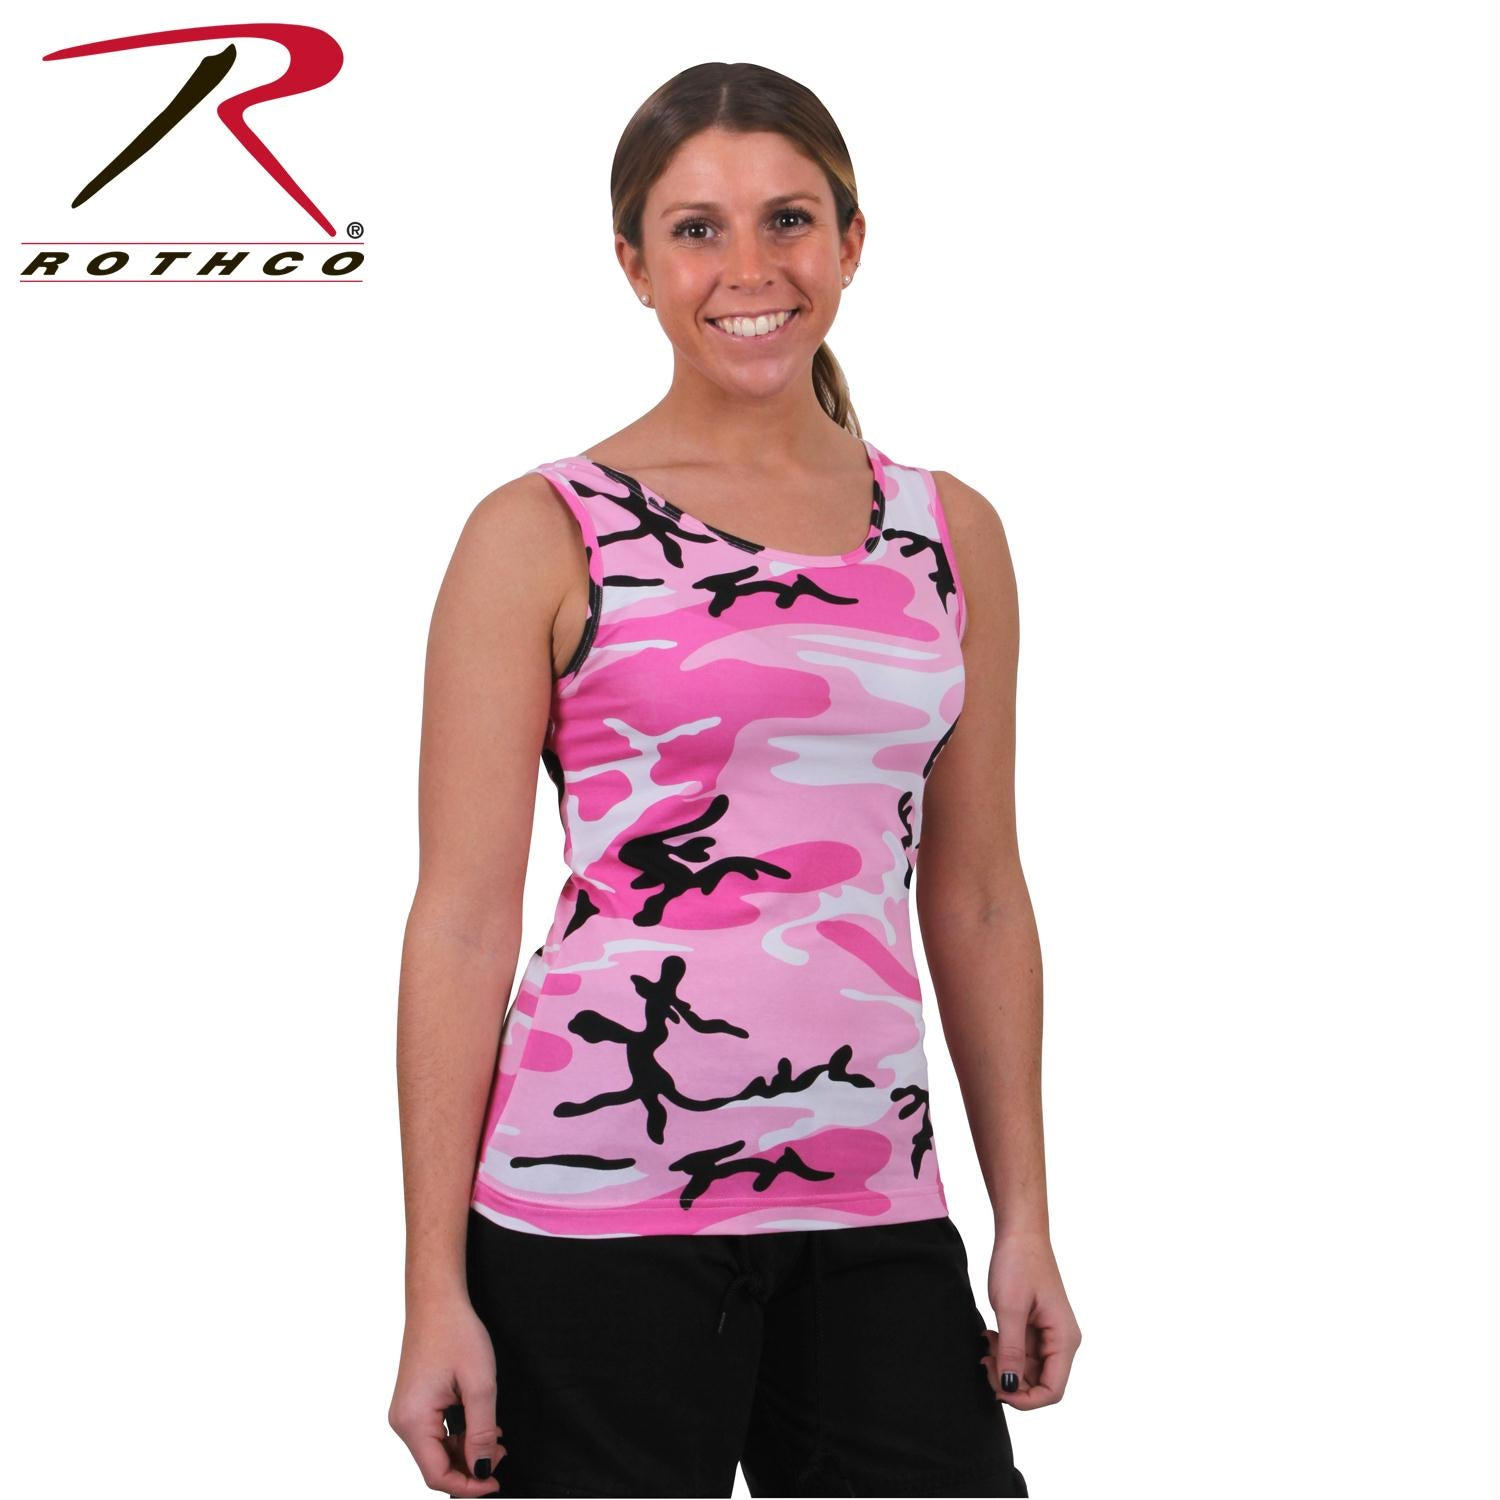 Rothco Womens Camo Stretch Tank Top - Pink Camo / 2XL